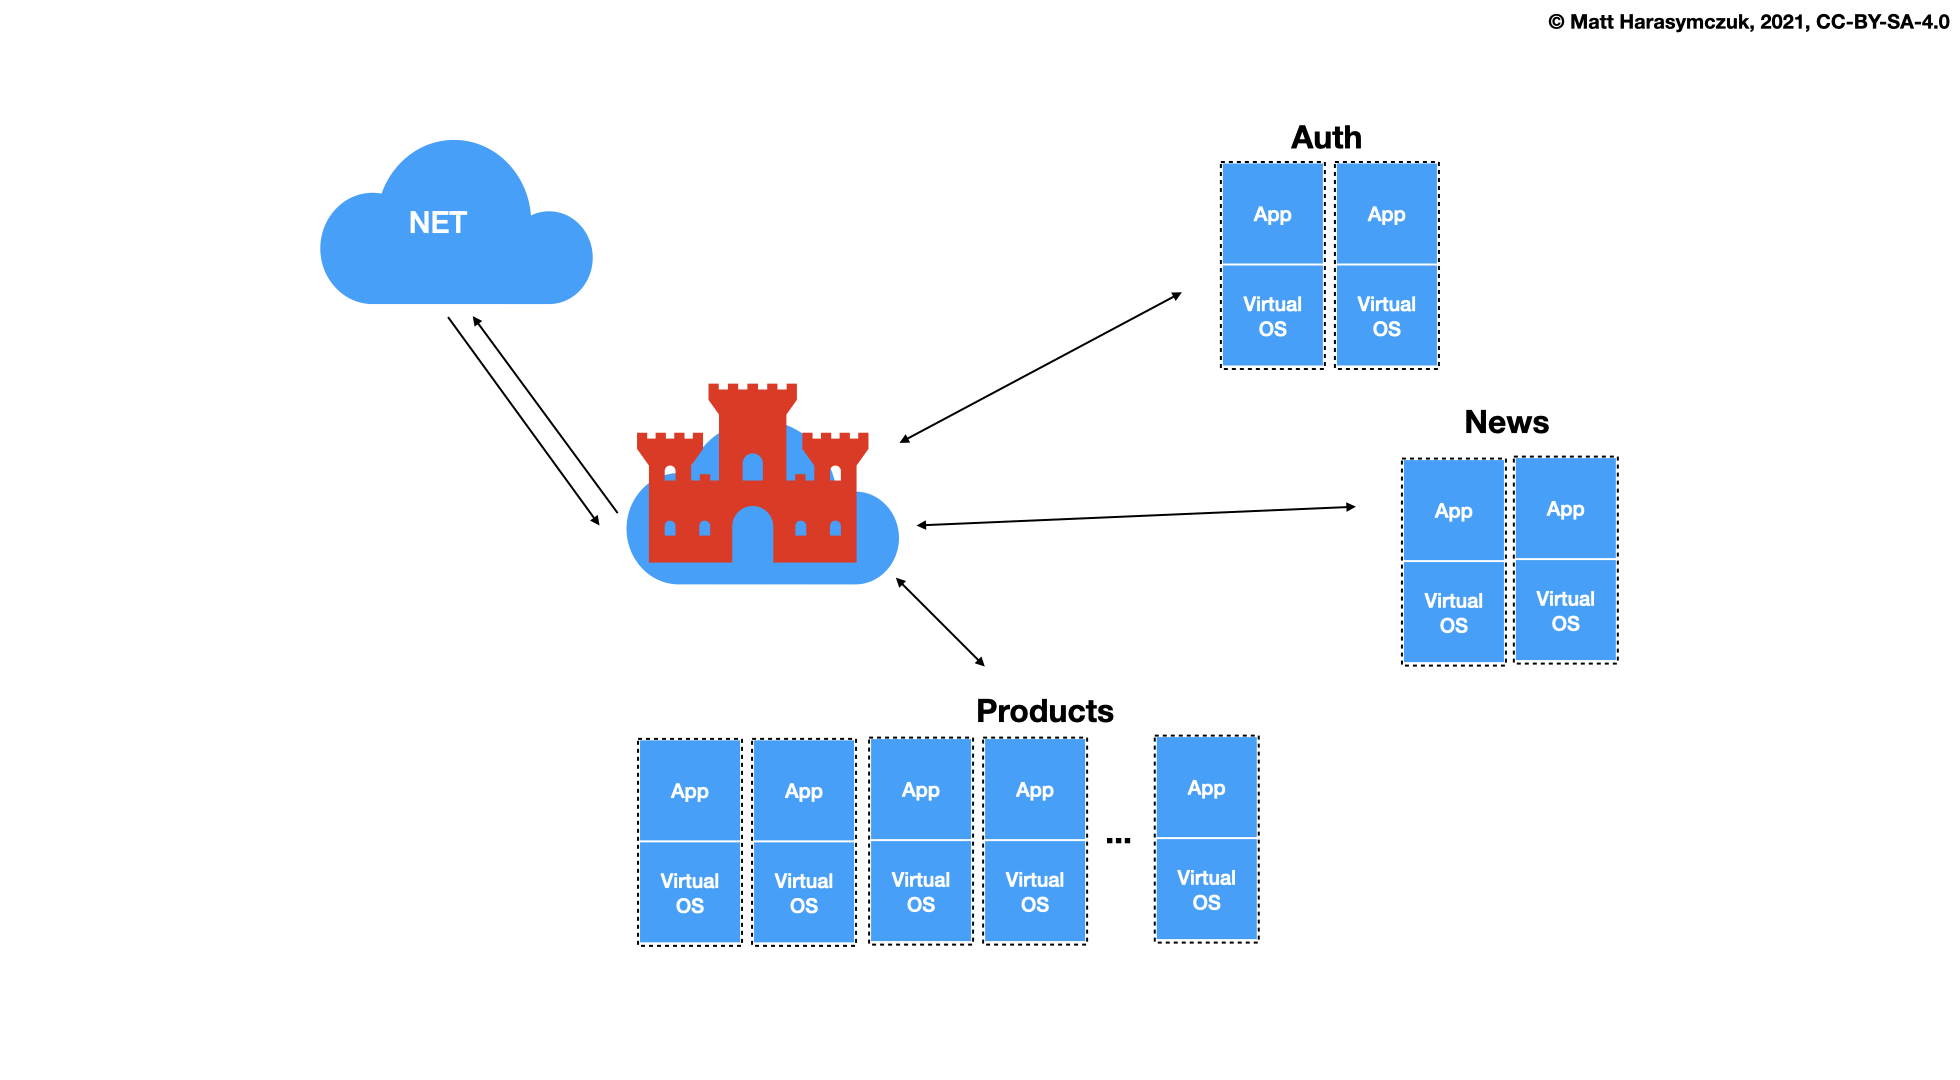 ../../_images/docker-stack-06-architecture.png